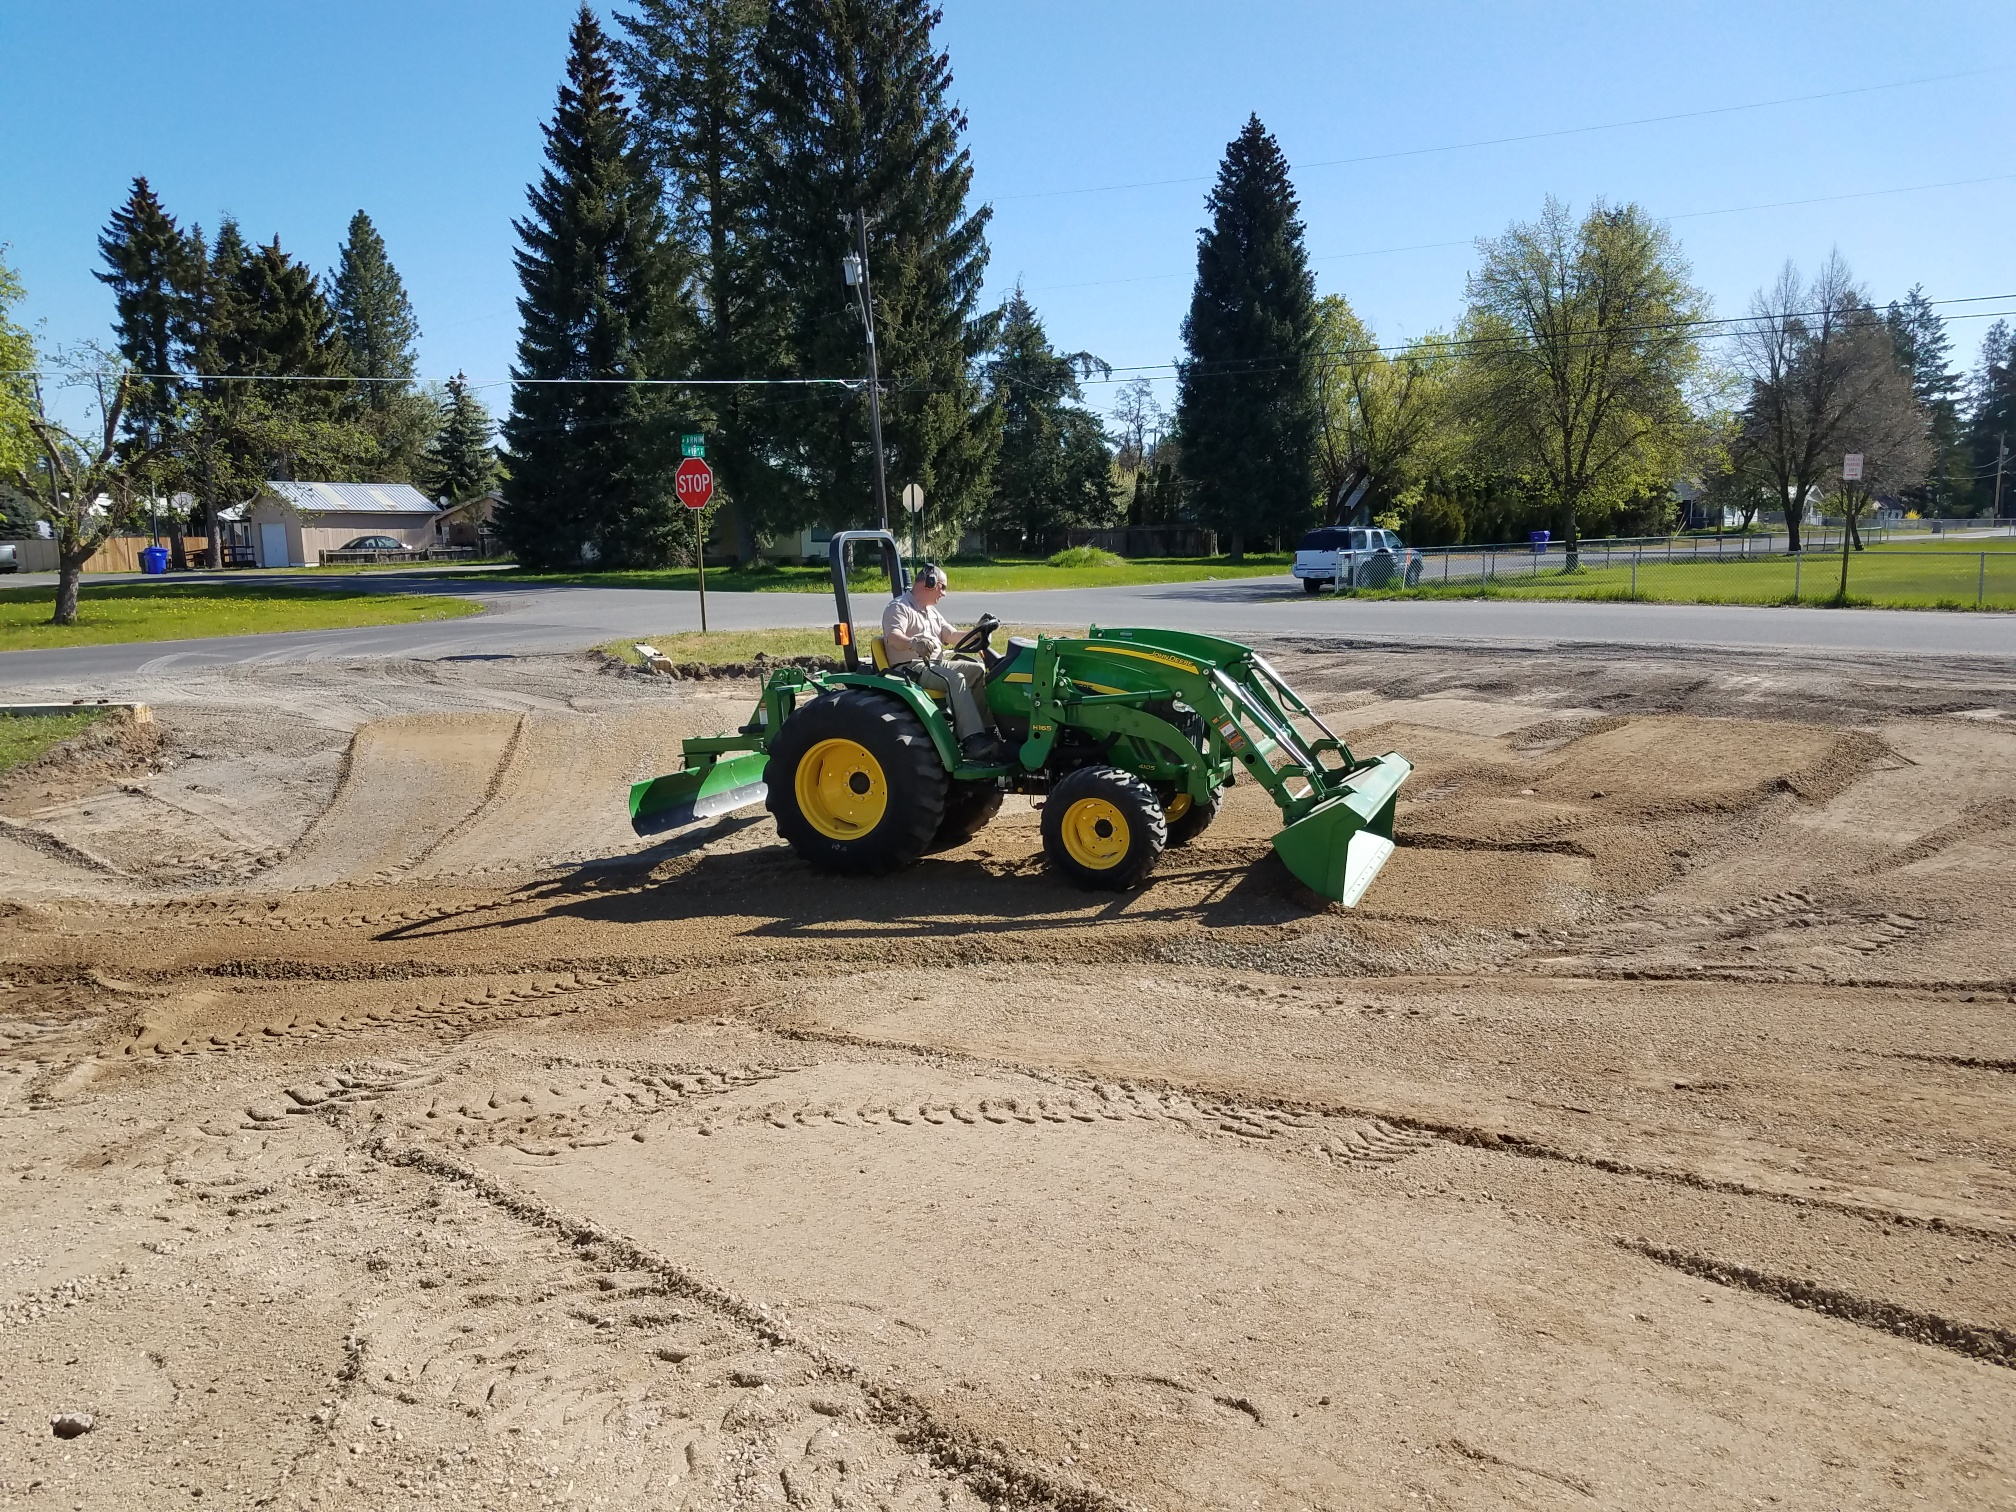 Jeff Hickethier donated his tractor and time to prep for paving by spreading the gravel to grade.